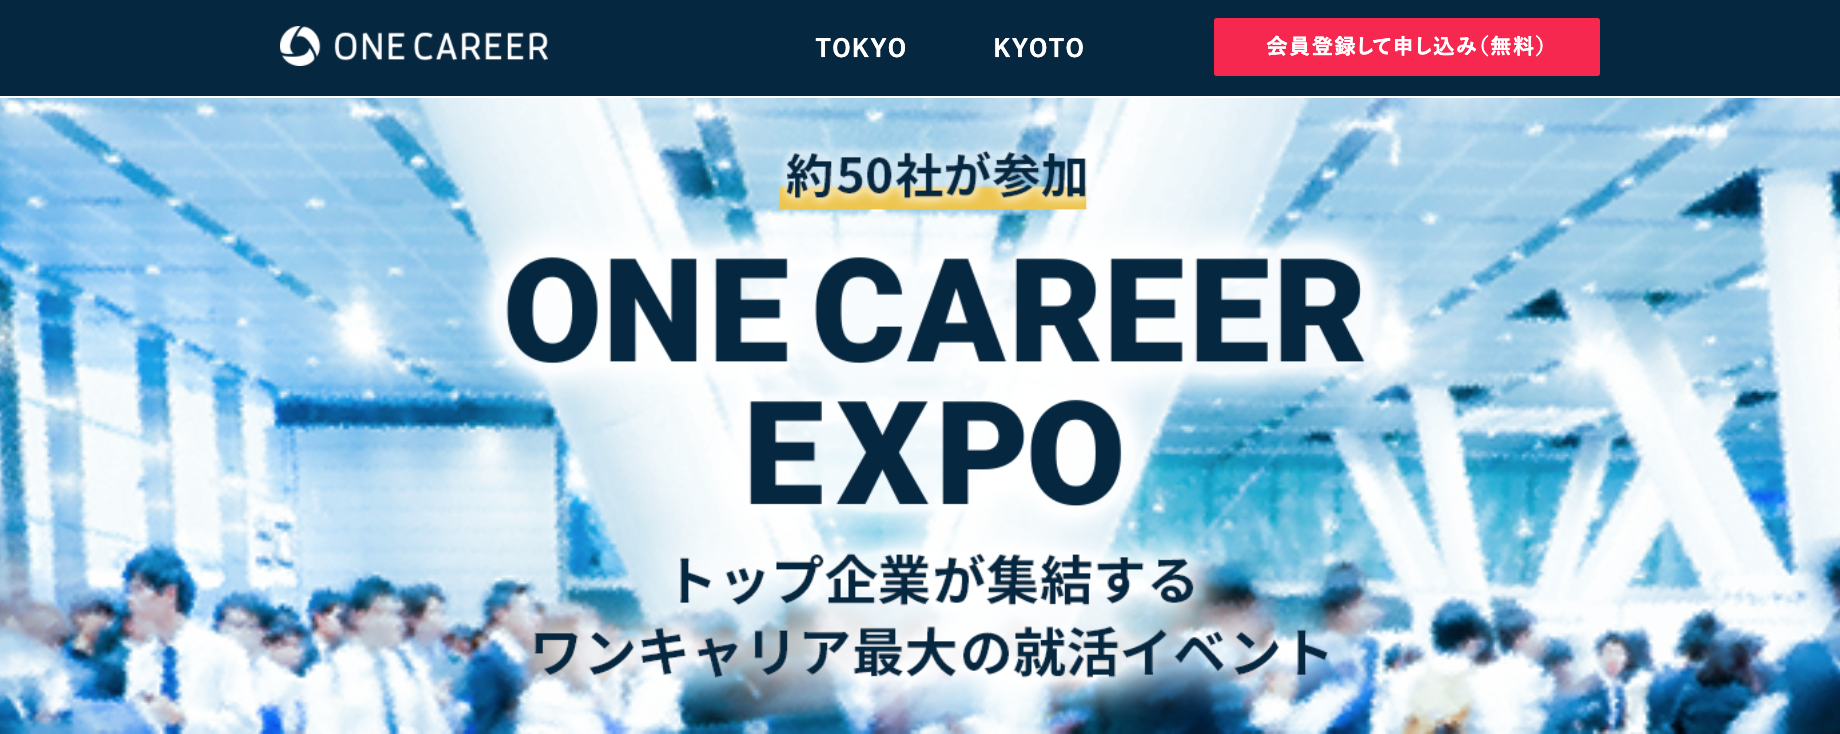 ONE CAREER EXPO